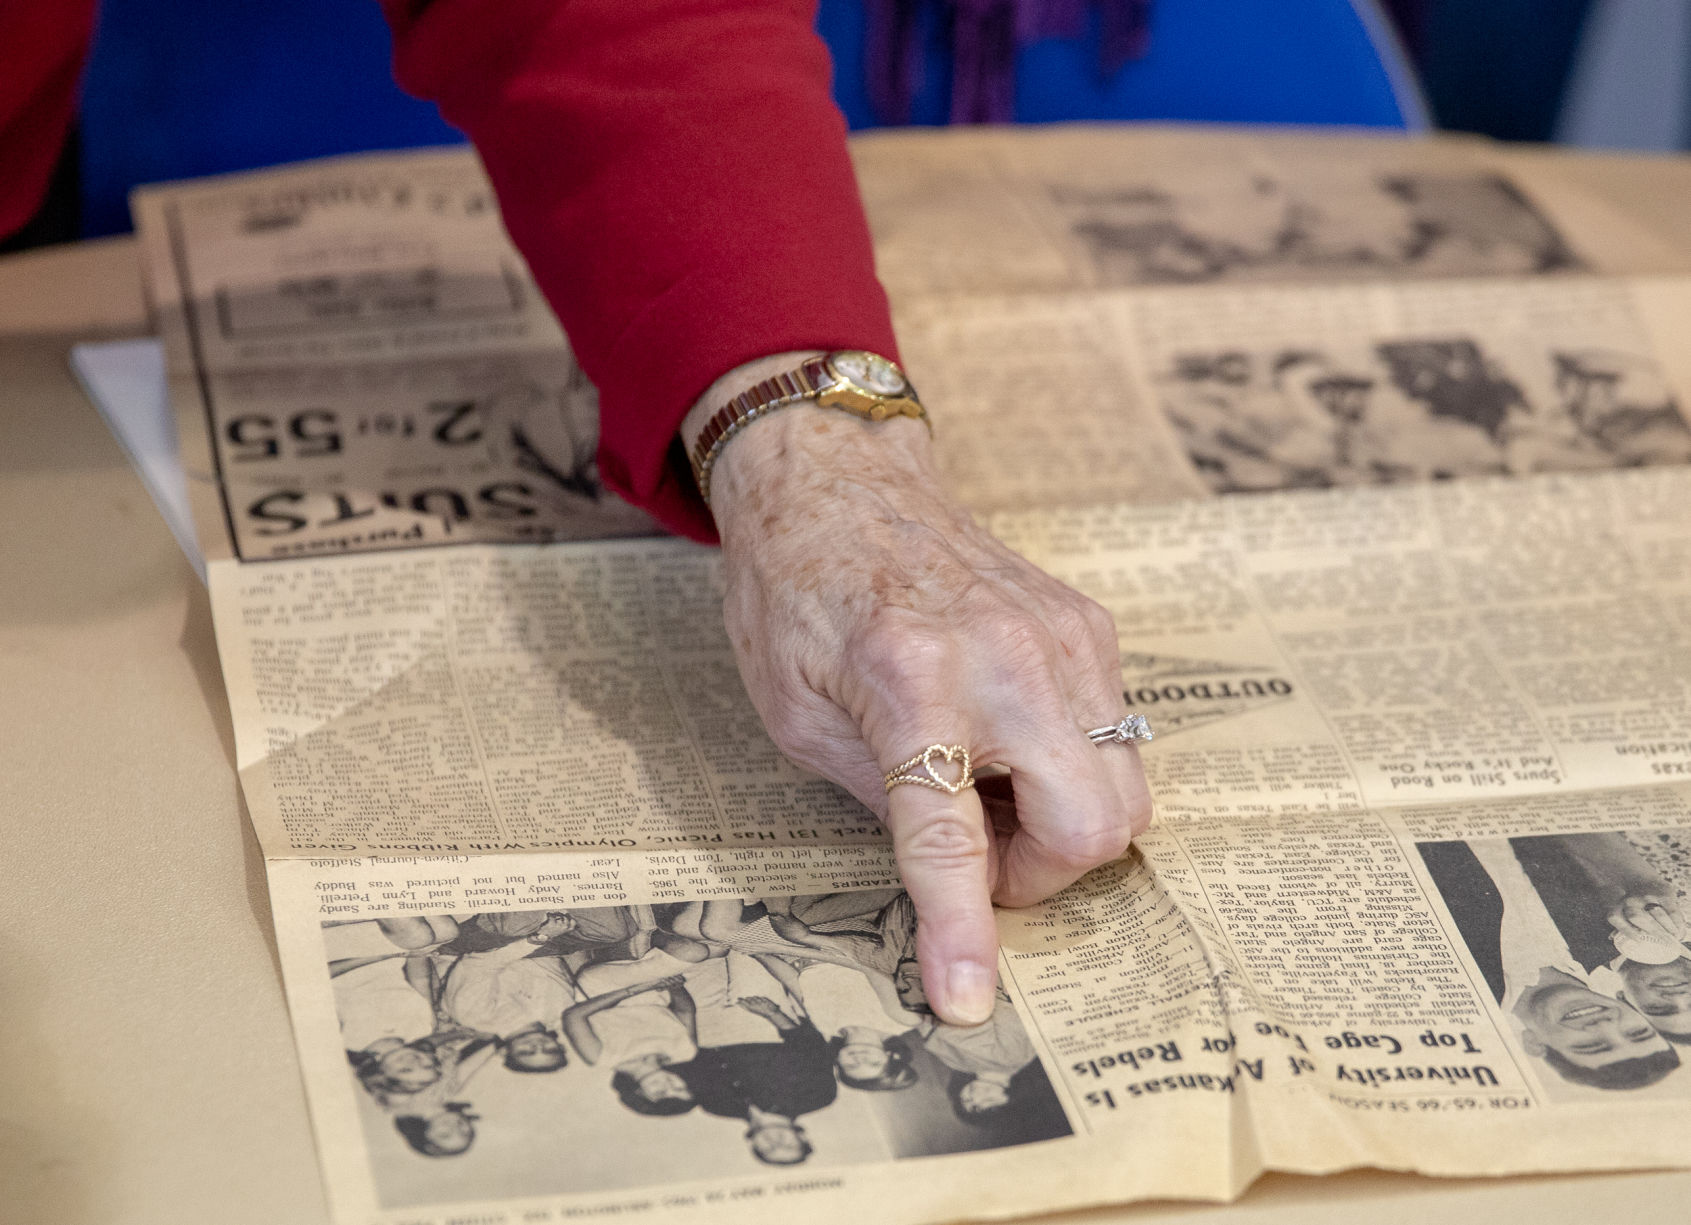 Over 50 years later, a UTA cheer team reunites for a day of nostalgia